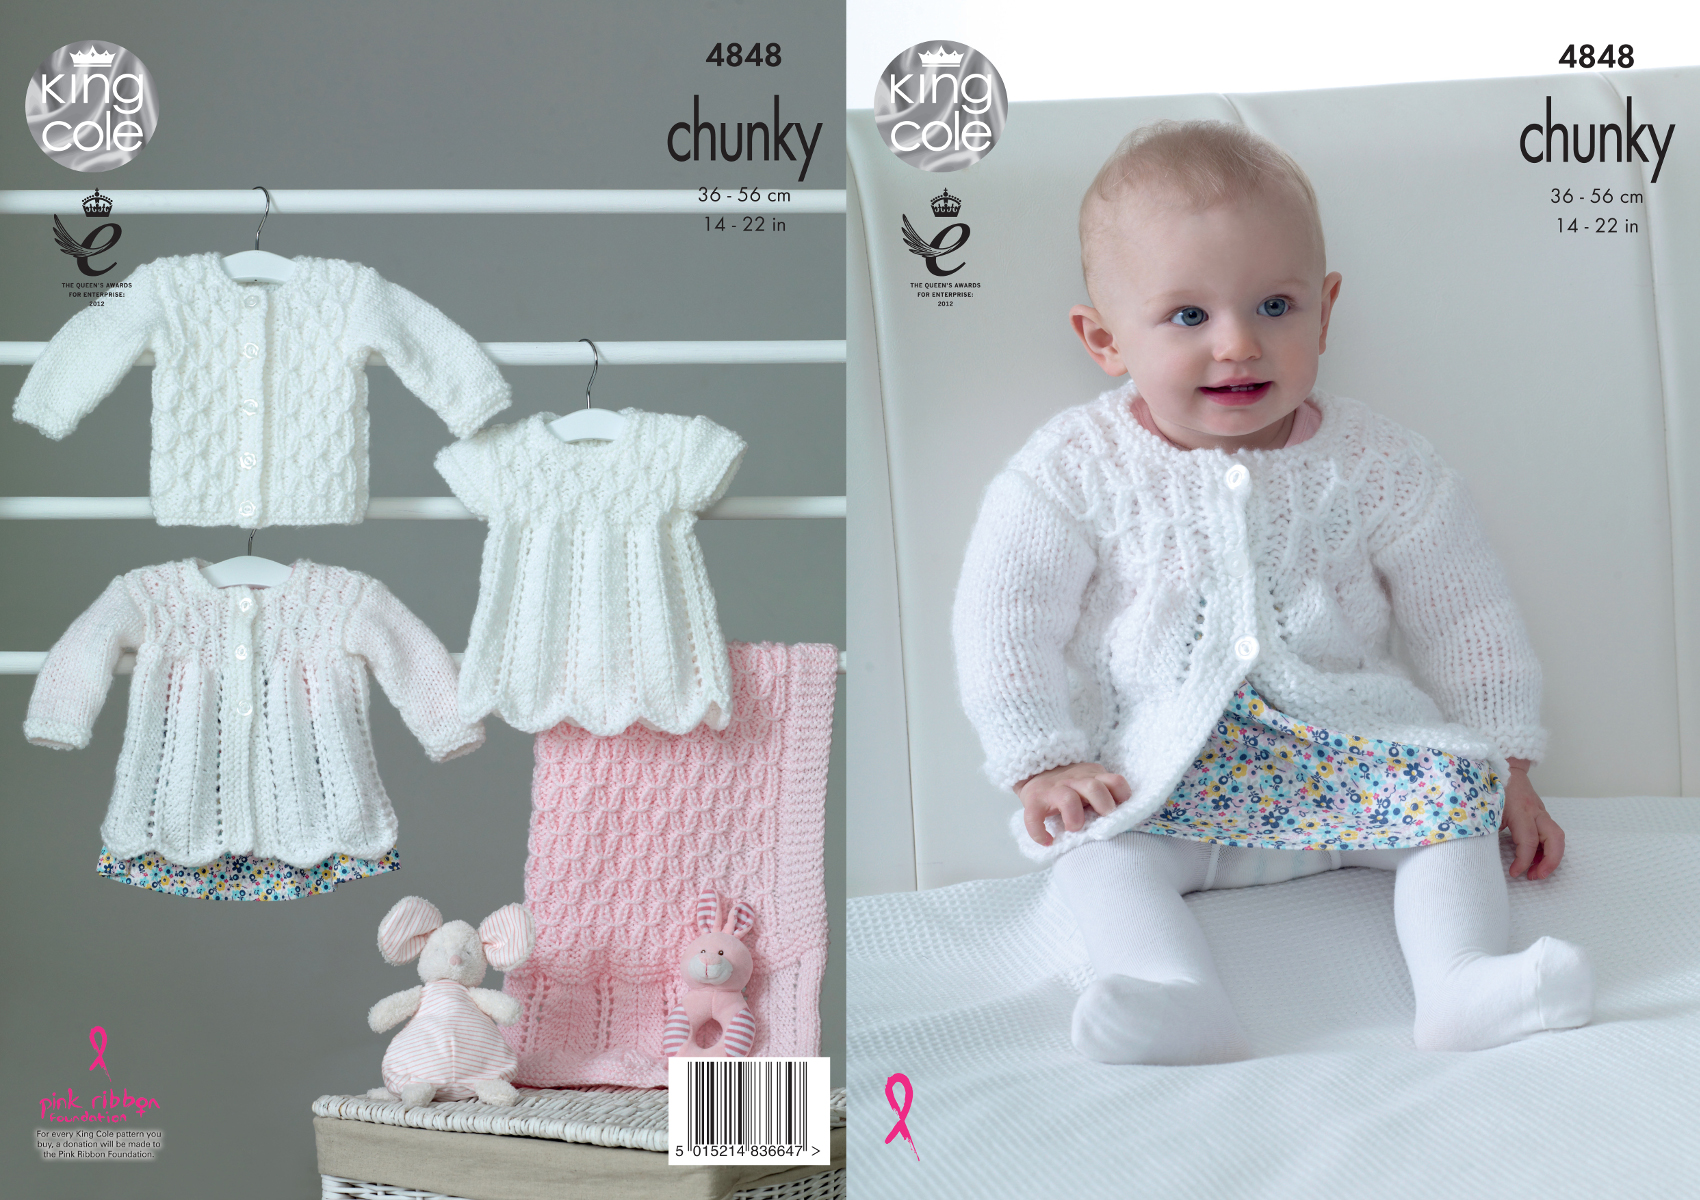 Chunky Knit Cardigan Pattern For Children : Chunky Knitting Pattern King Cole Baby Matinee Coat Top Cardigan & Blanke...